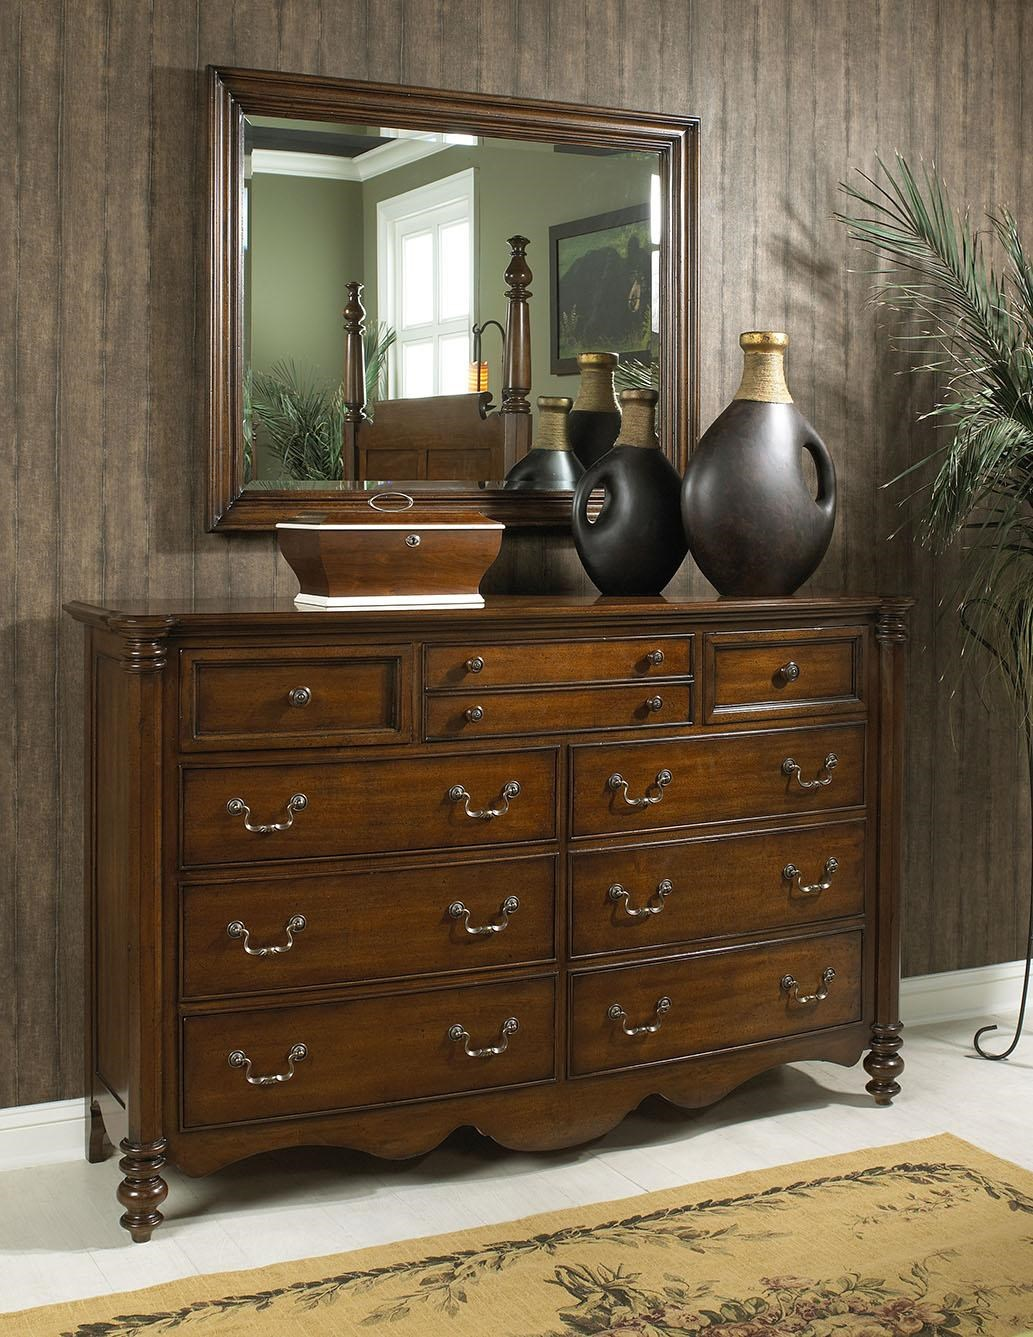 Fine Furniture Design Summer Home Elegant Dresser And Mirror Combo